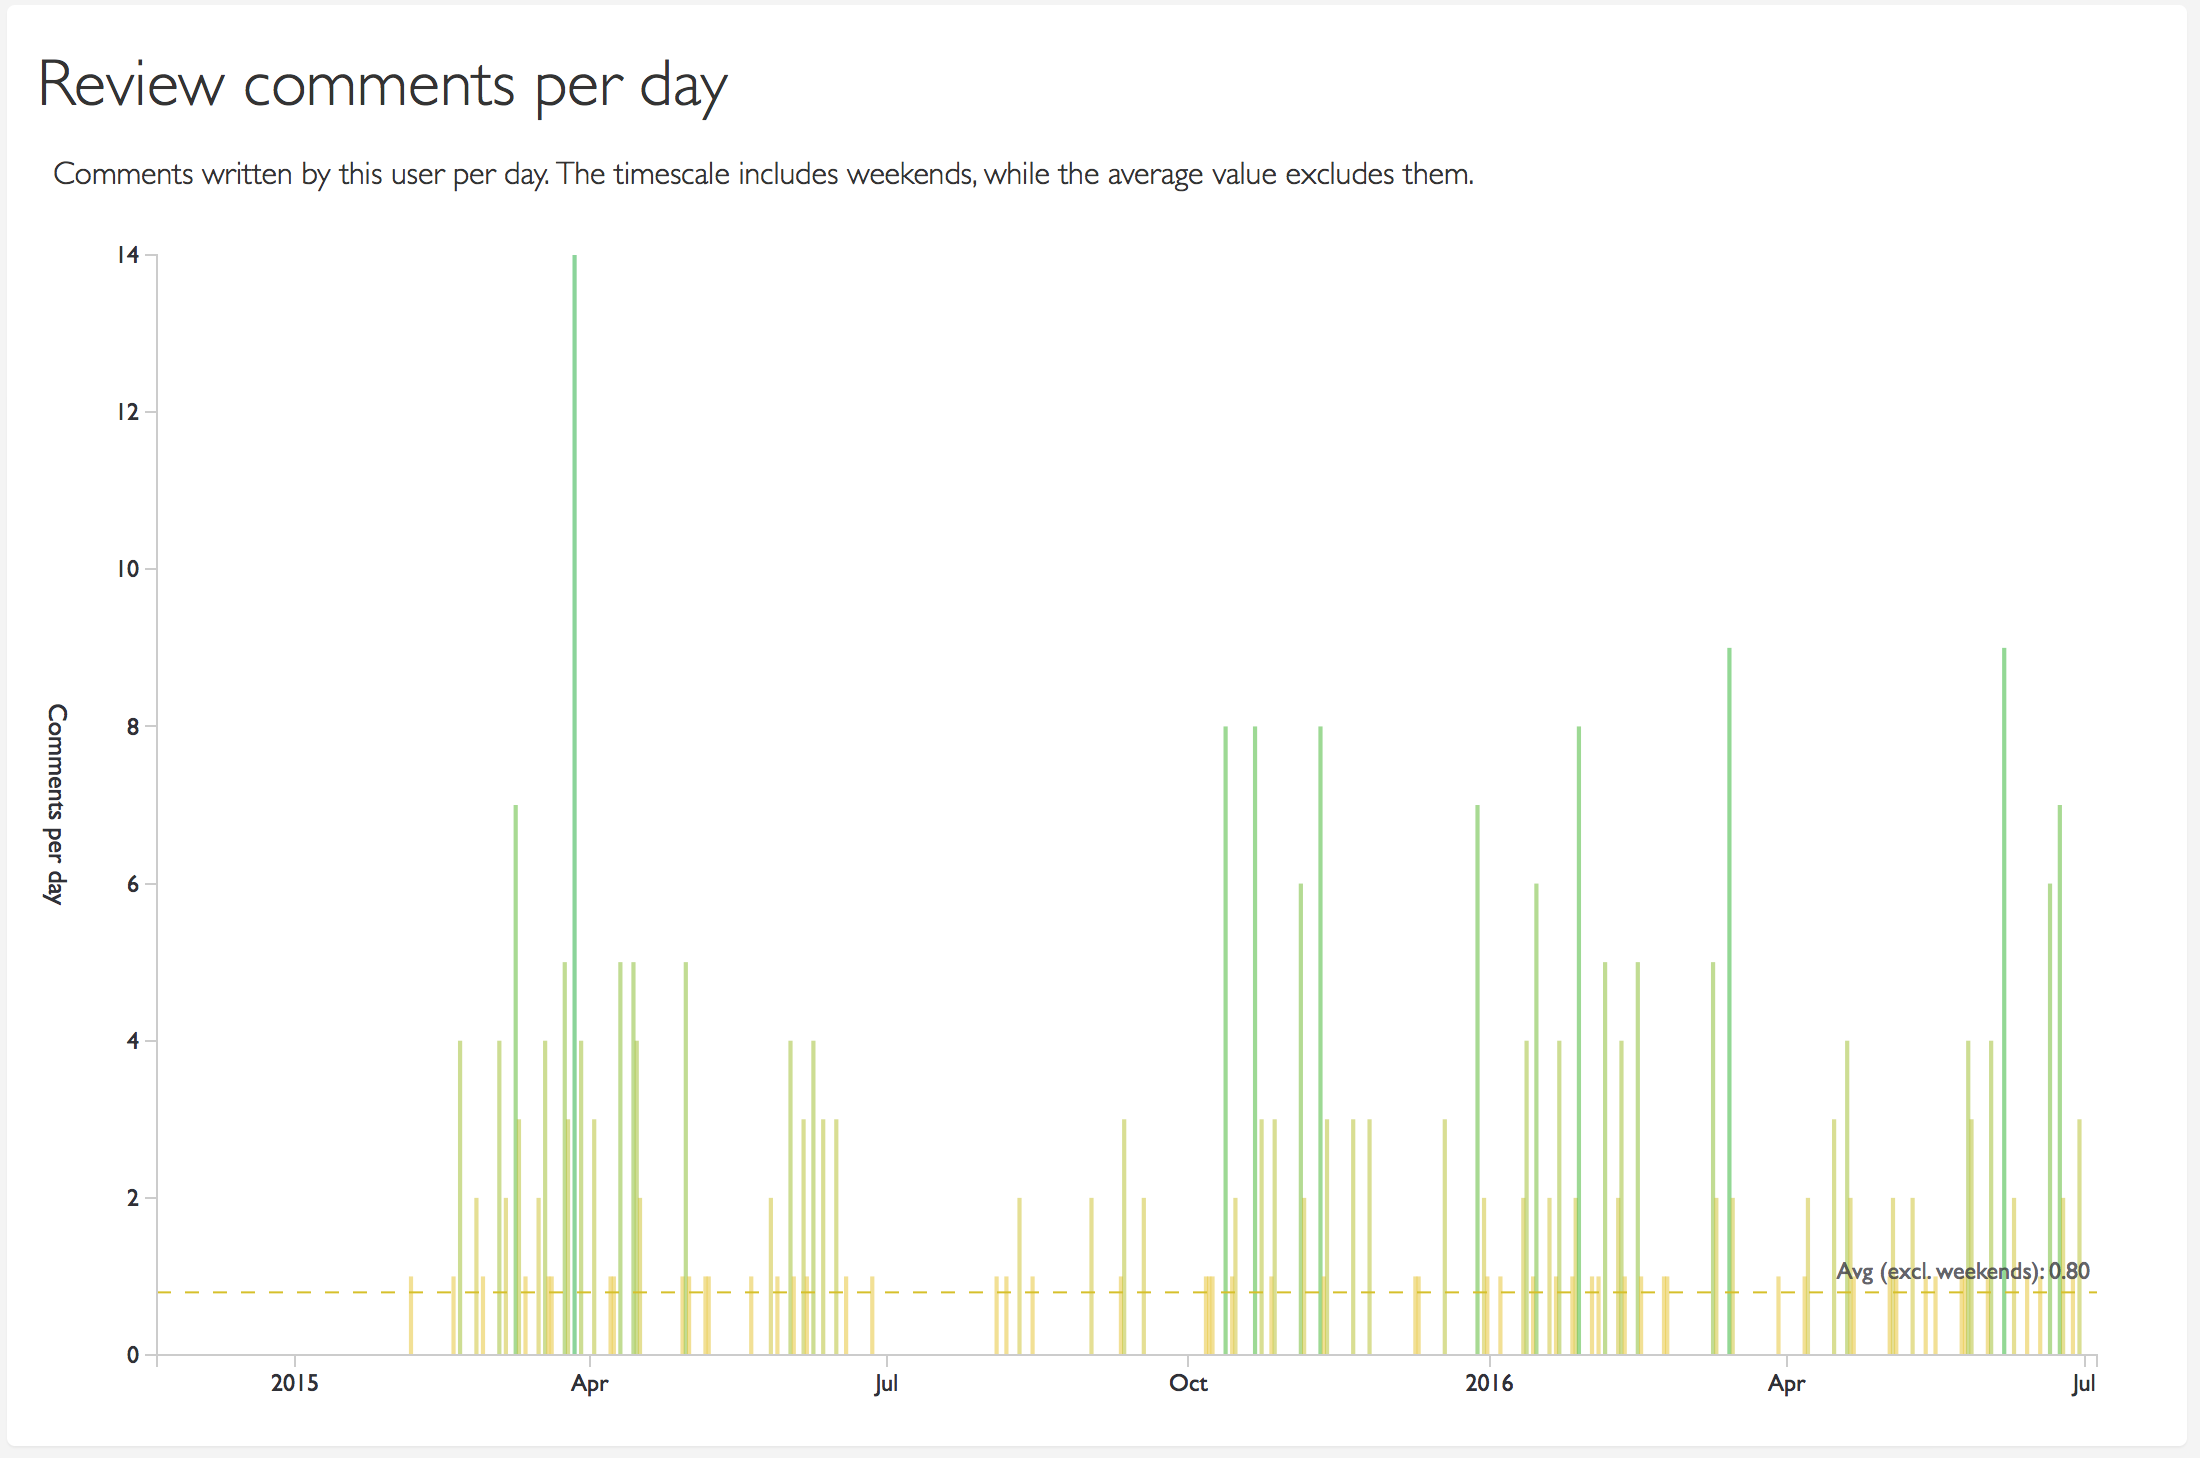 A per-day chart of the number of reviews done by this user.